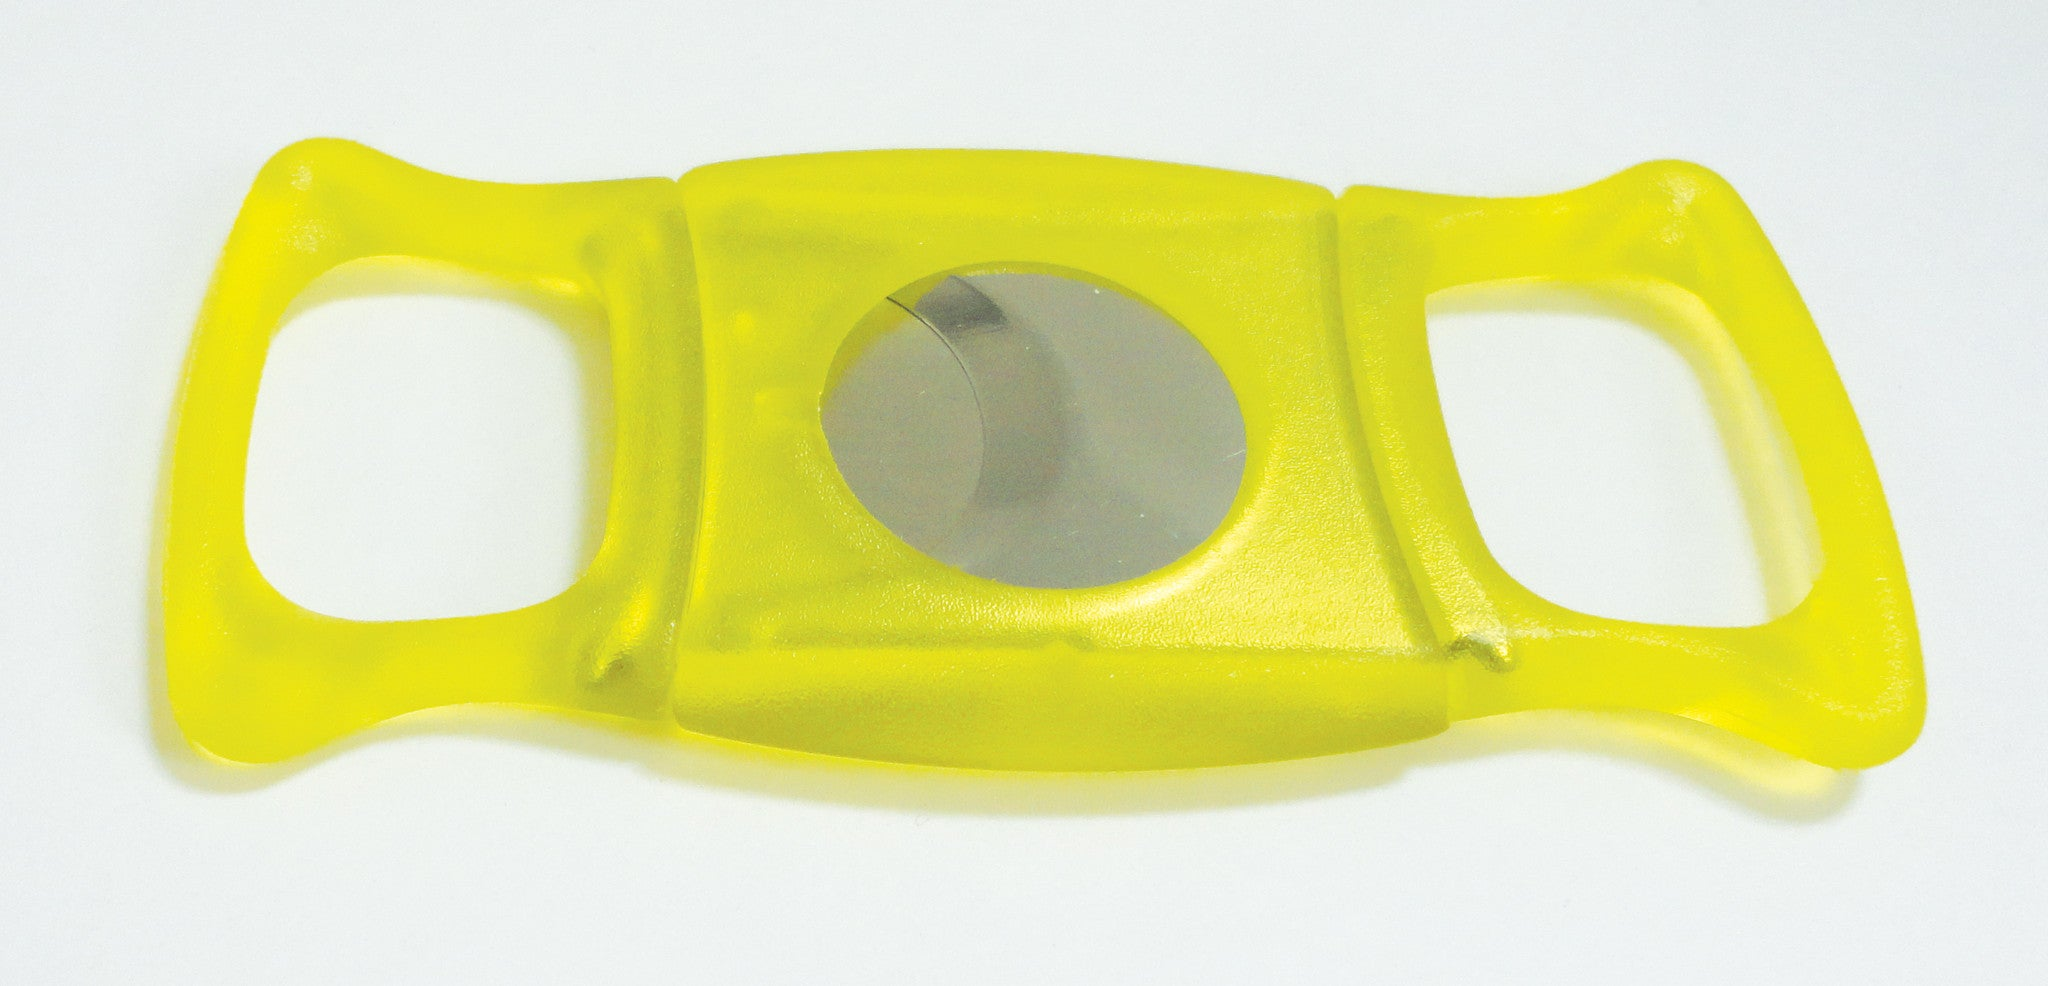 Legendex cigar cutter stainless steel double blade yellow 05-05-202